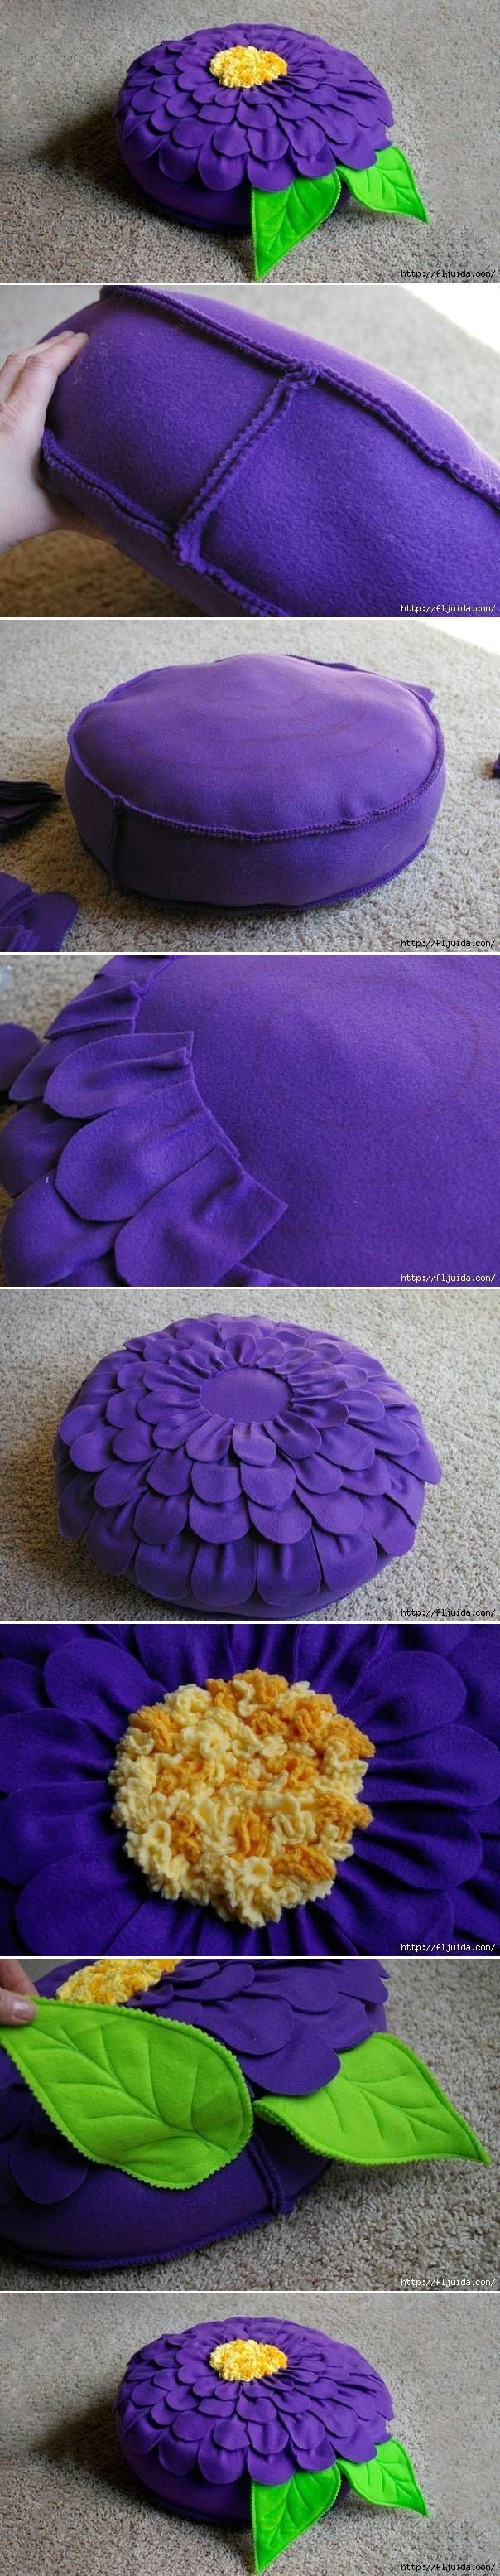 DIY Beautiful Flower Cushion almofada de flor